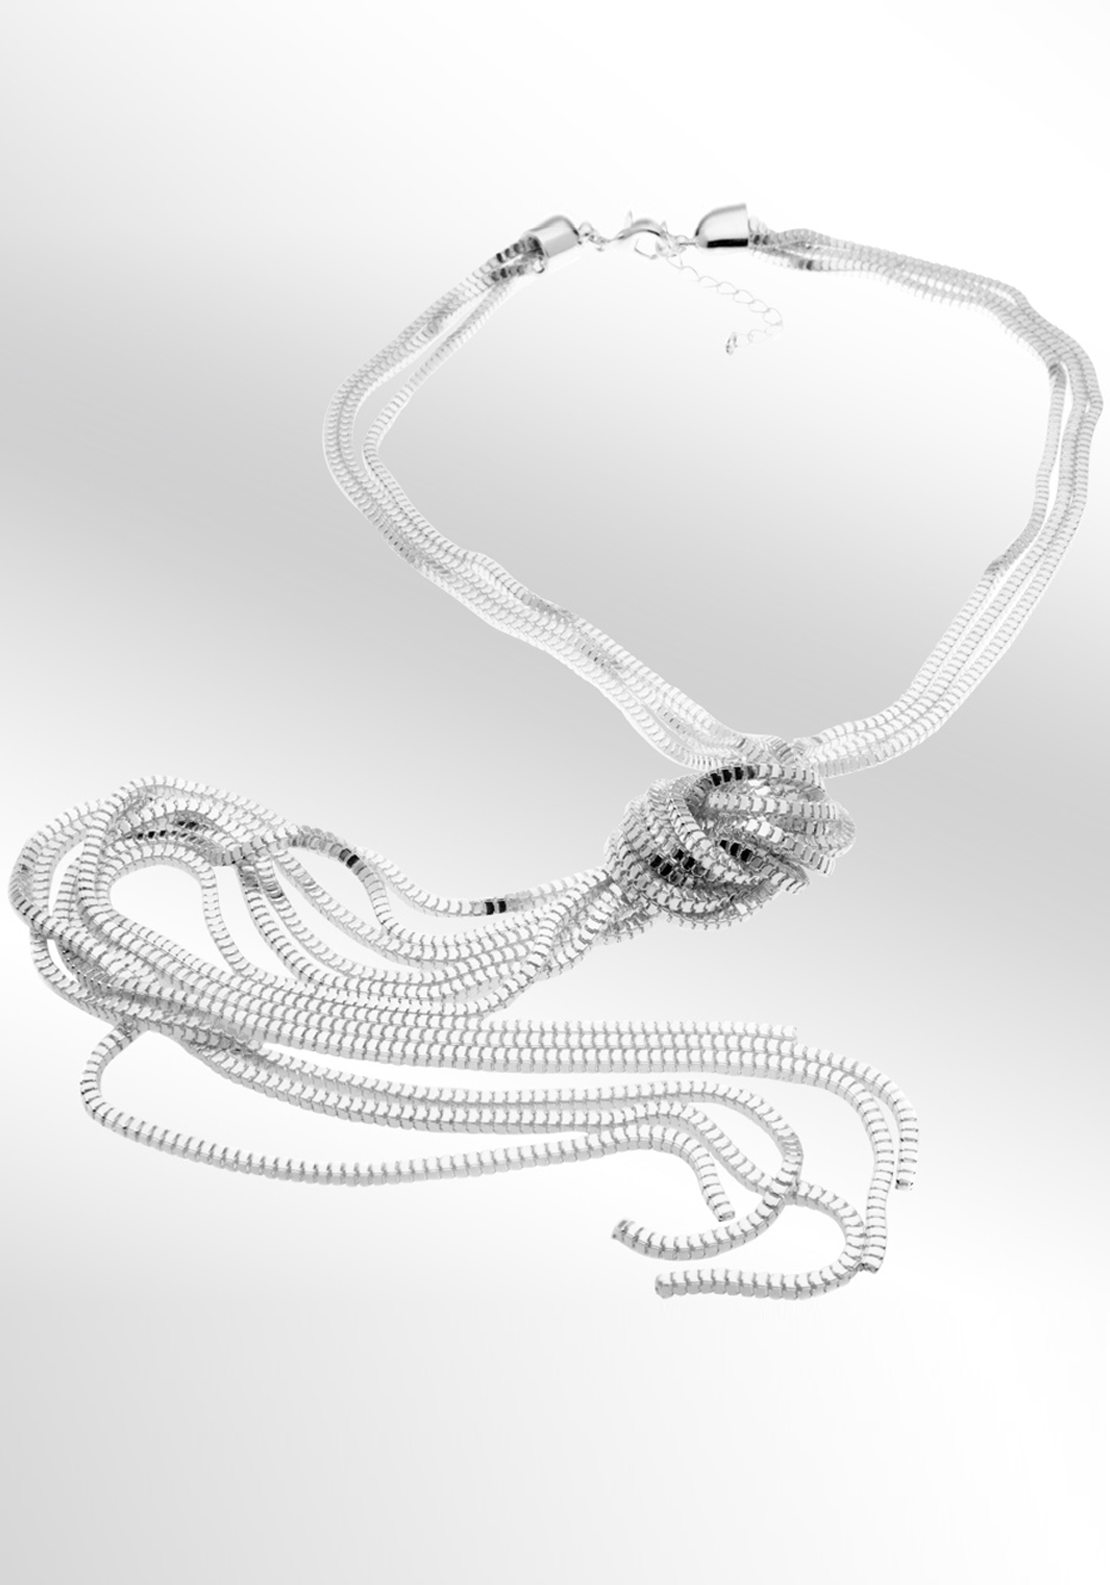 Newbridge eShe Knotted Necklace, Silver